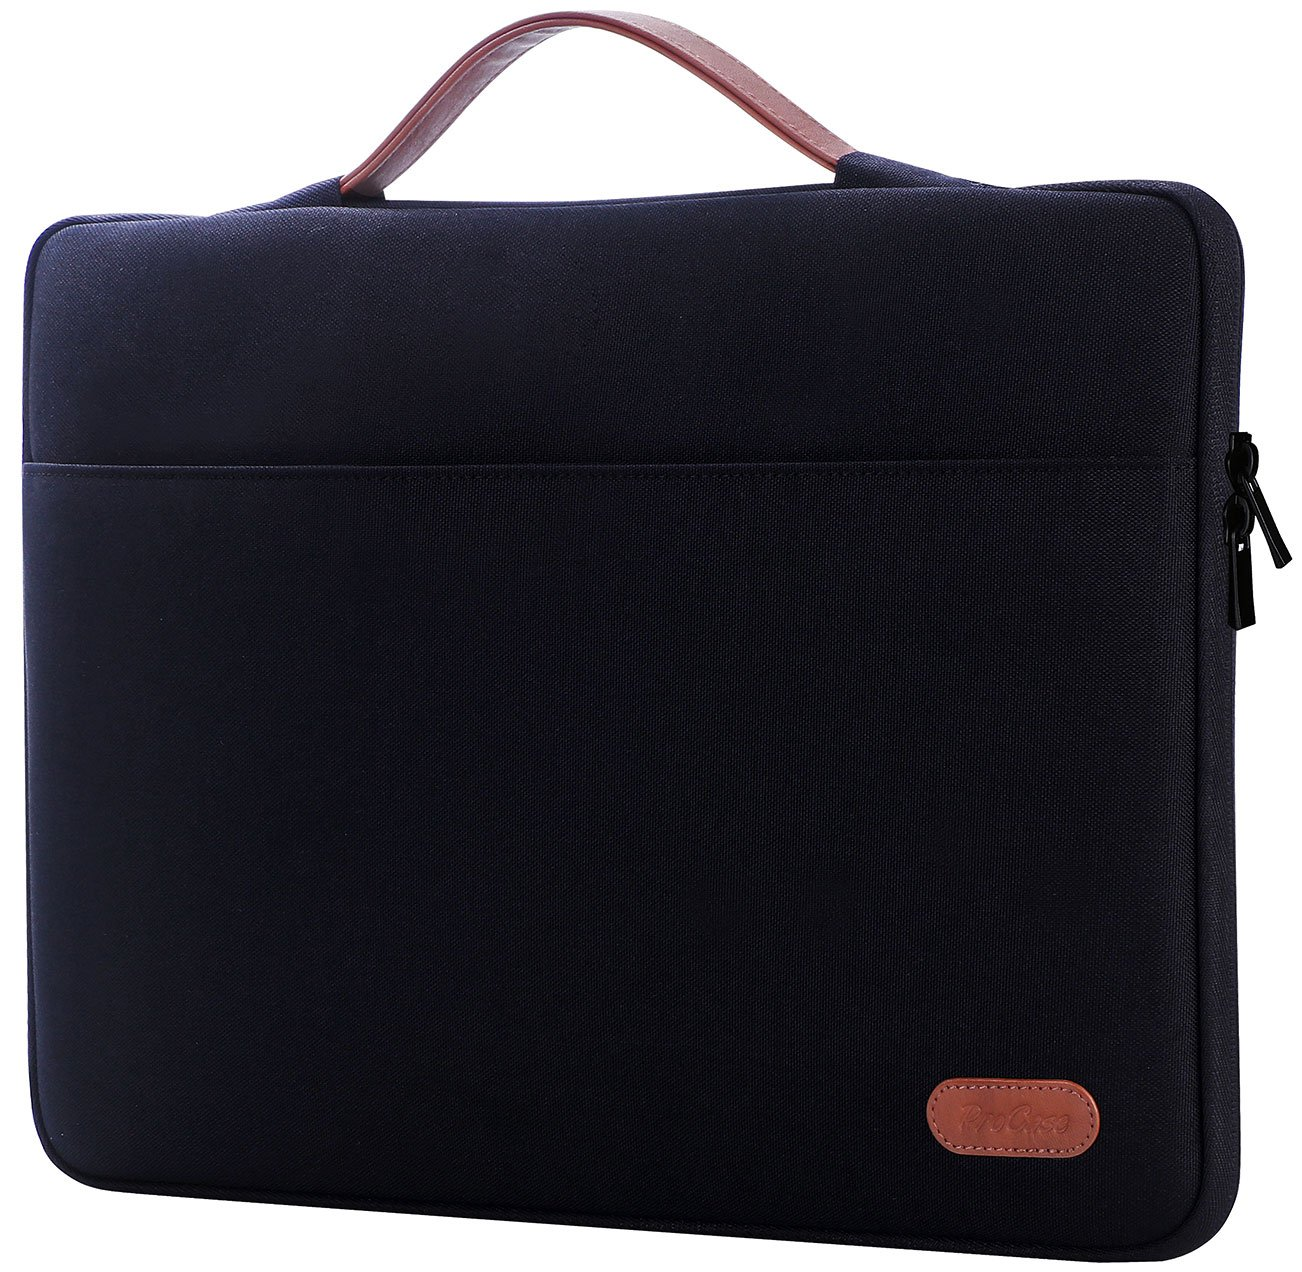 ProCase 14-15.6 Inch Laptop Sleeve Case Protective Bag, Ultrabook Notebook Carrying Case Handbag for 14'' 15'' 15.6'' Dell Lenovo HP Asus Acer Samsung Sony Toshiba Chromebook Laptop Computers -Black by ProCase